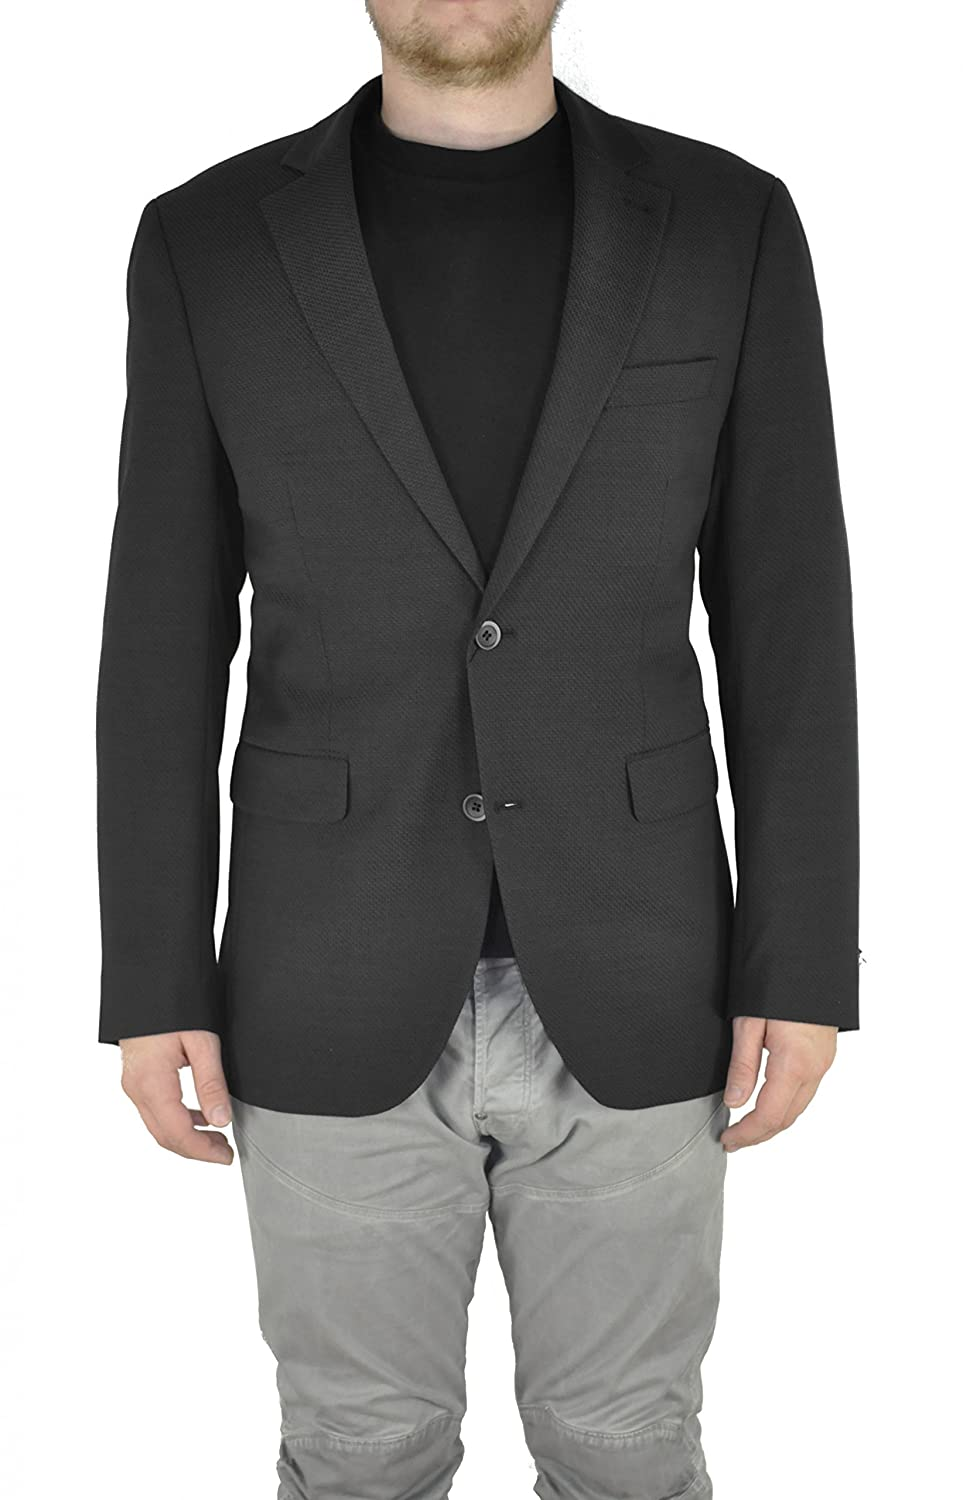 Michaelax-Fashion-Trade Men's Long Sleeve Jacket